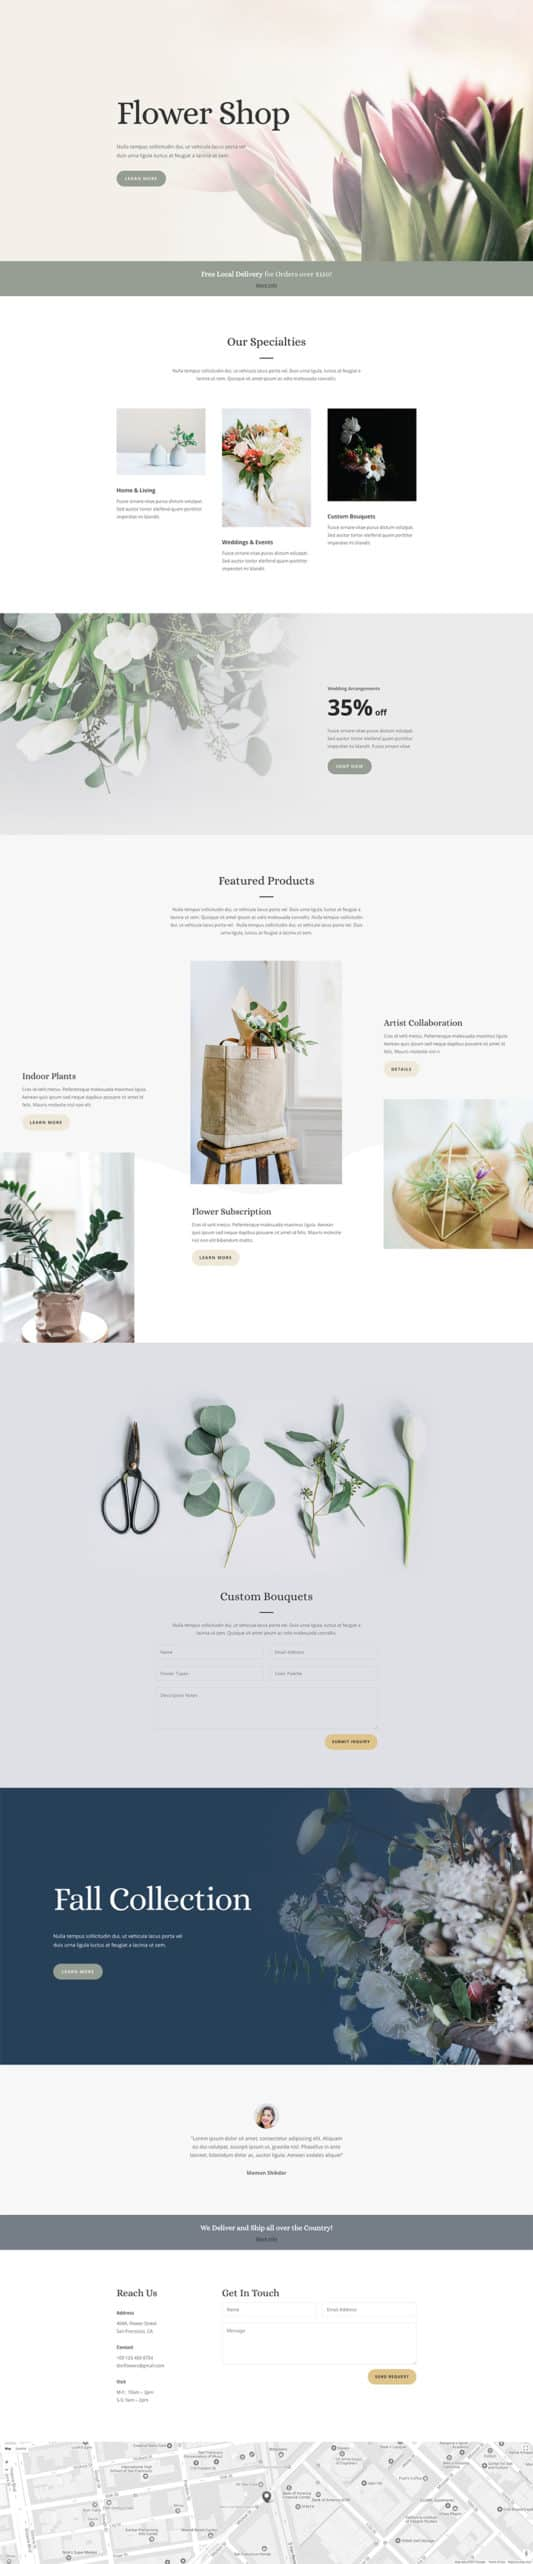 The Florist Page Style: Homepage Design 1